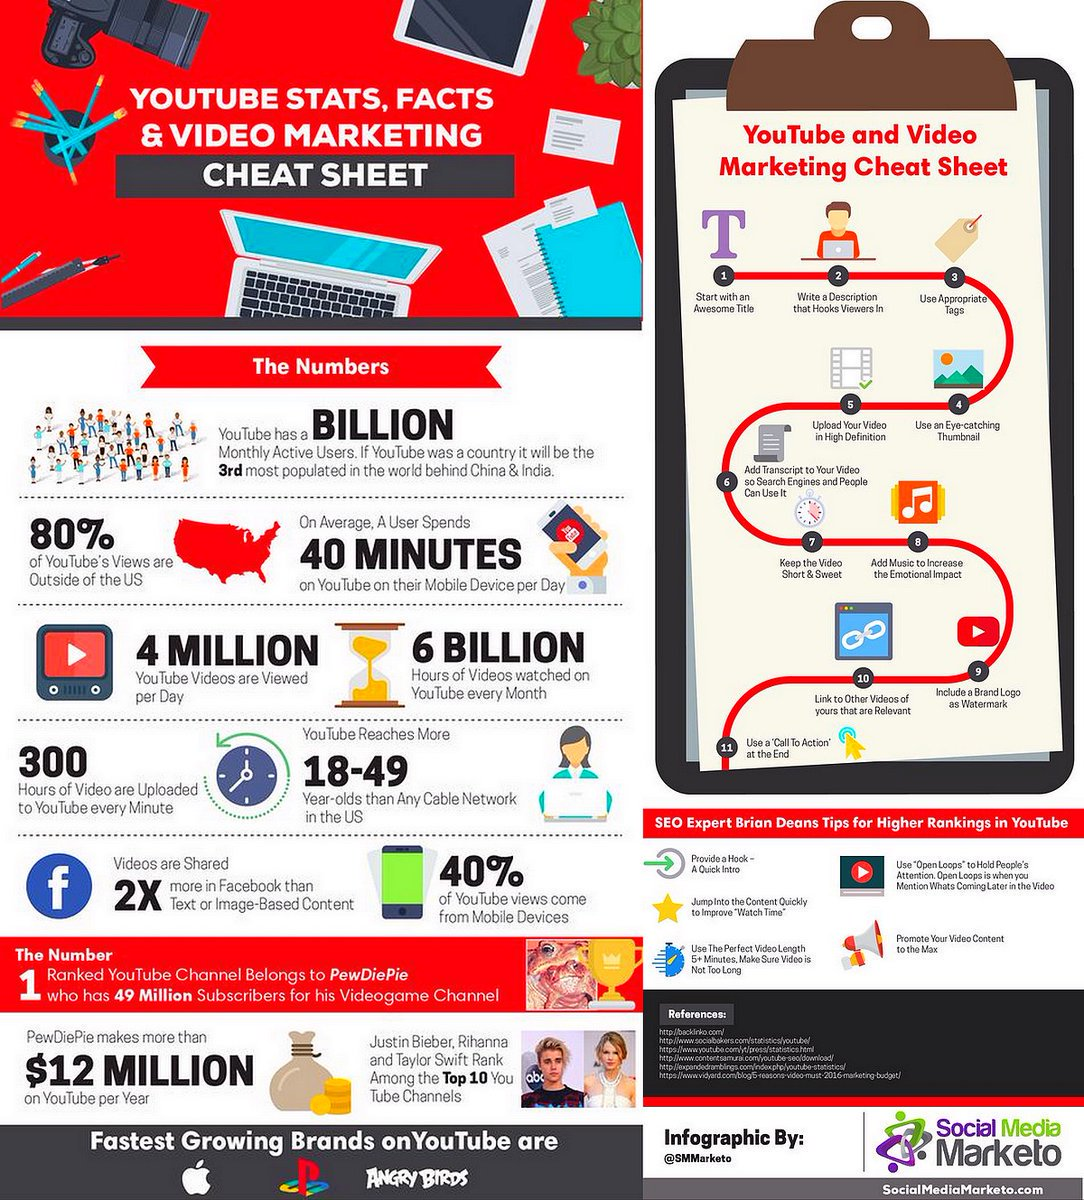 #Growth Hacking Your #Youtube Video #Marketing: The Youtube Cheat Sheet [Infographic]  #VideoMarketing #GrowthHacking #ContentMarketing<br>http://pic.twitter.com/u7oMilI7Yp